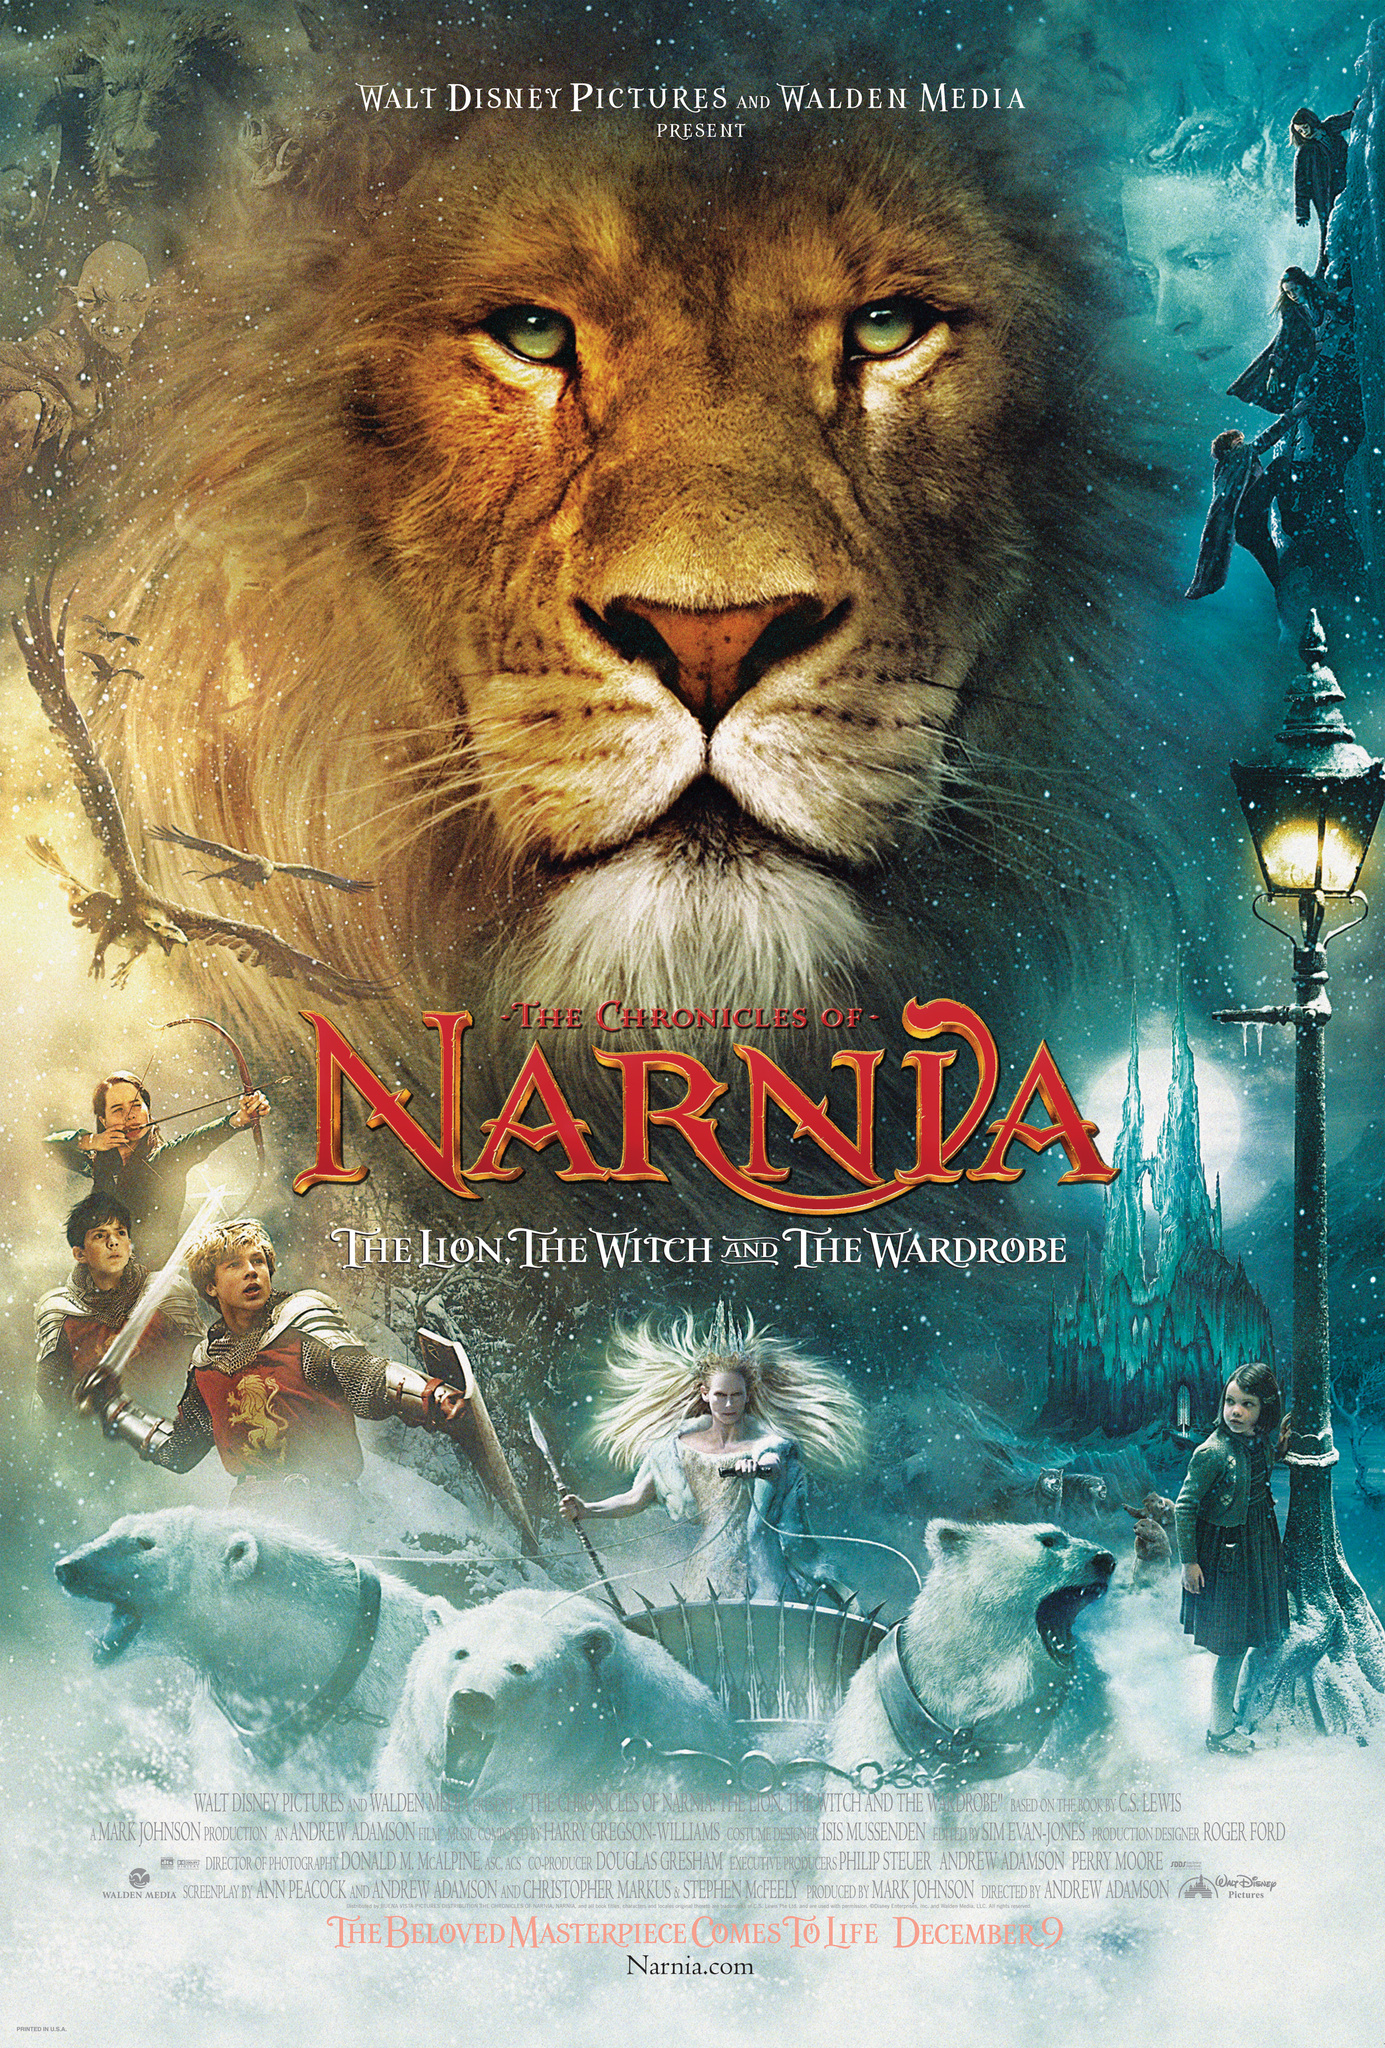 The Chronicles of Narnia: The Lion, the Witch and the Wardrobe kapak